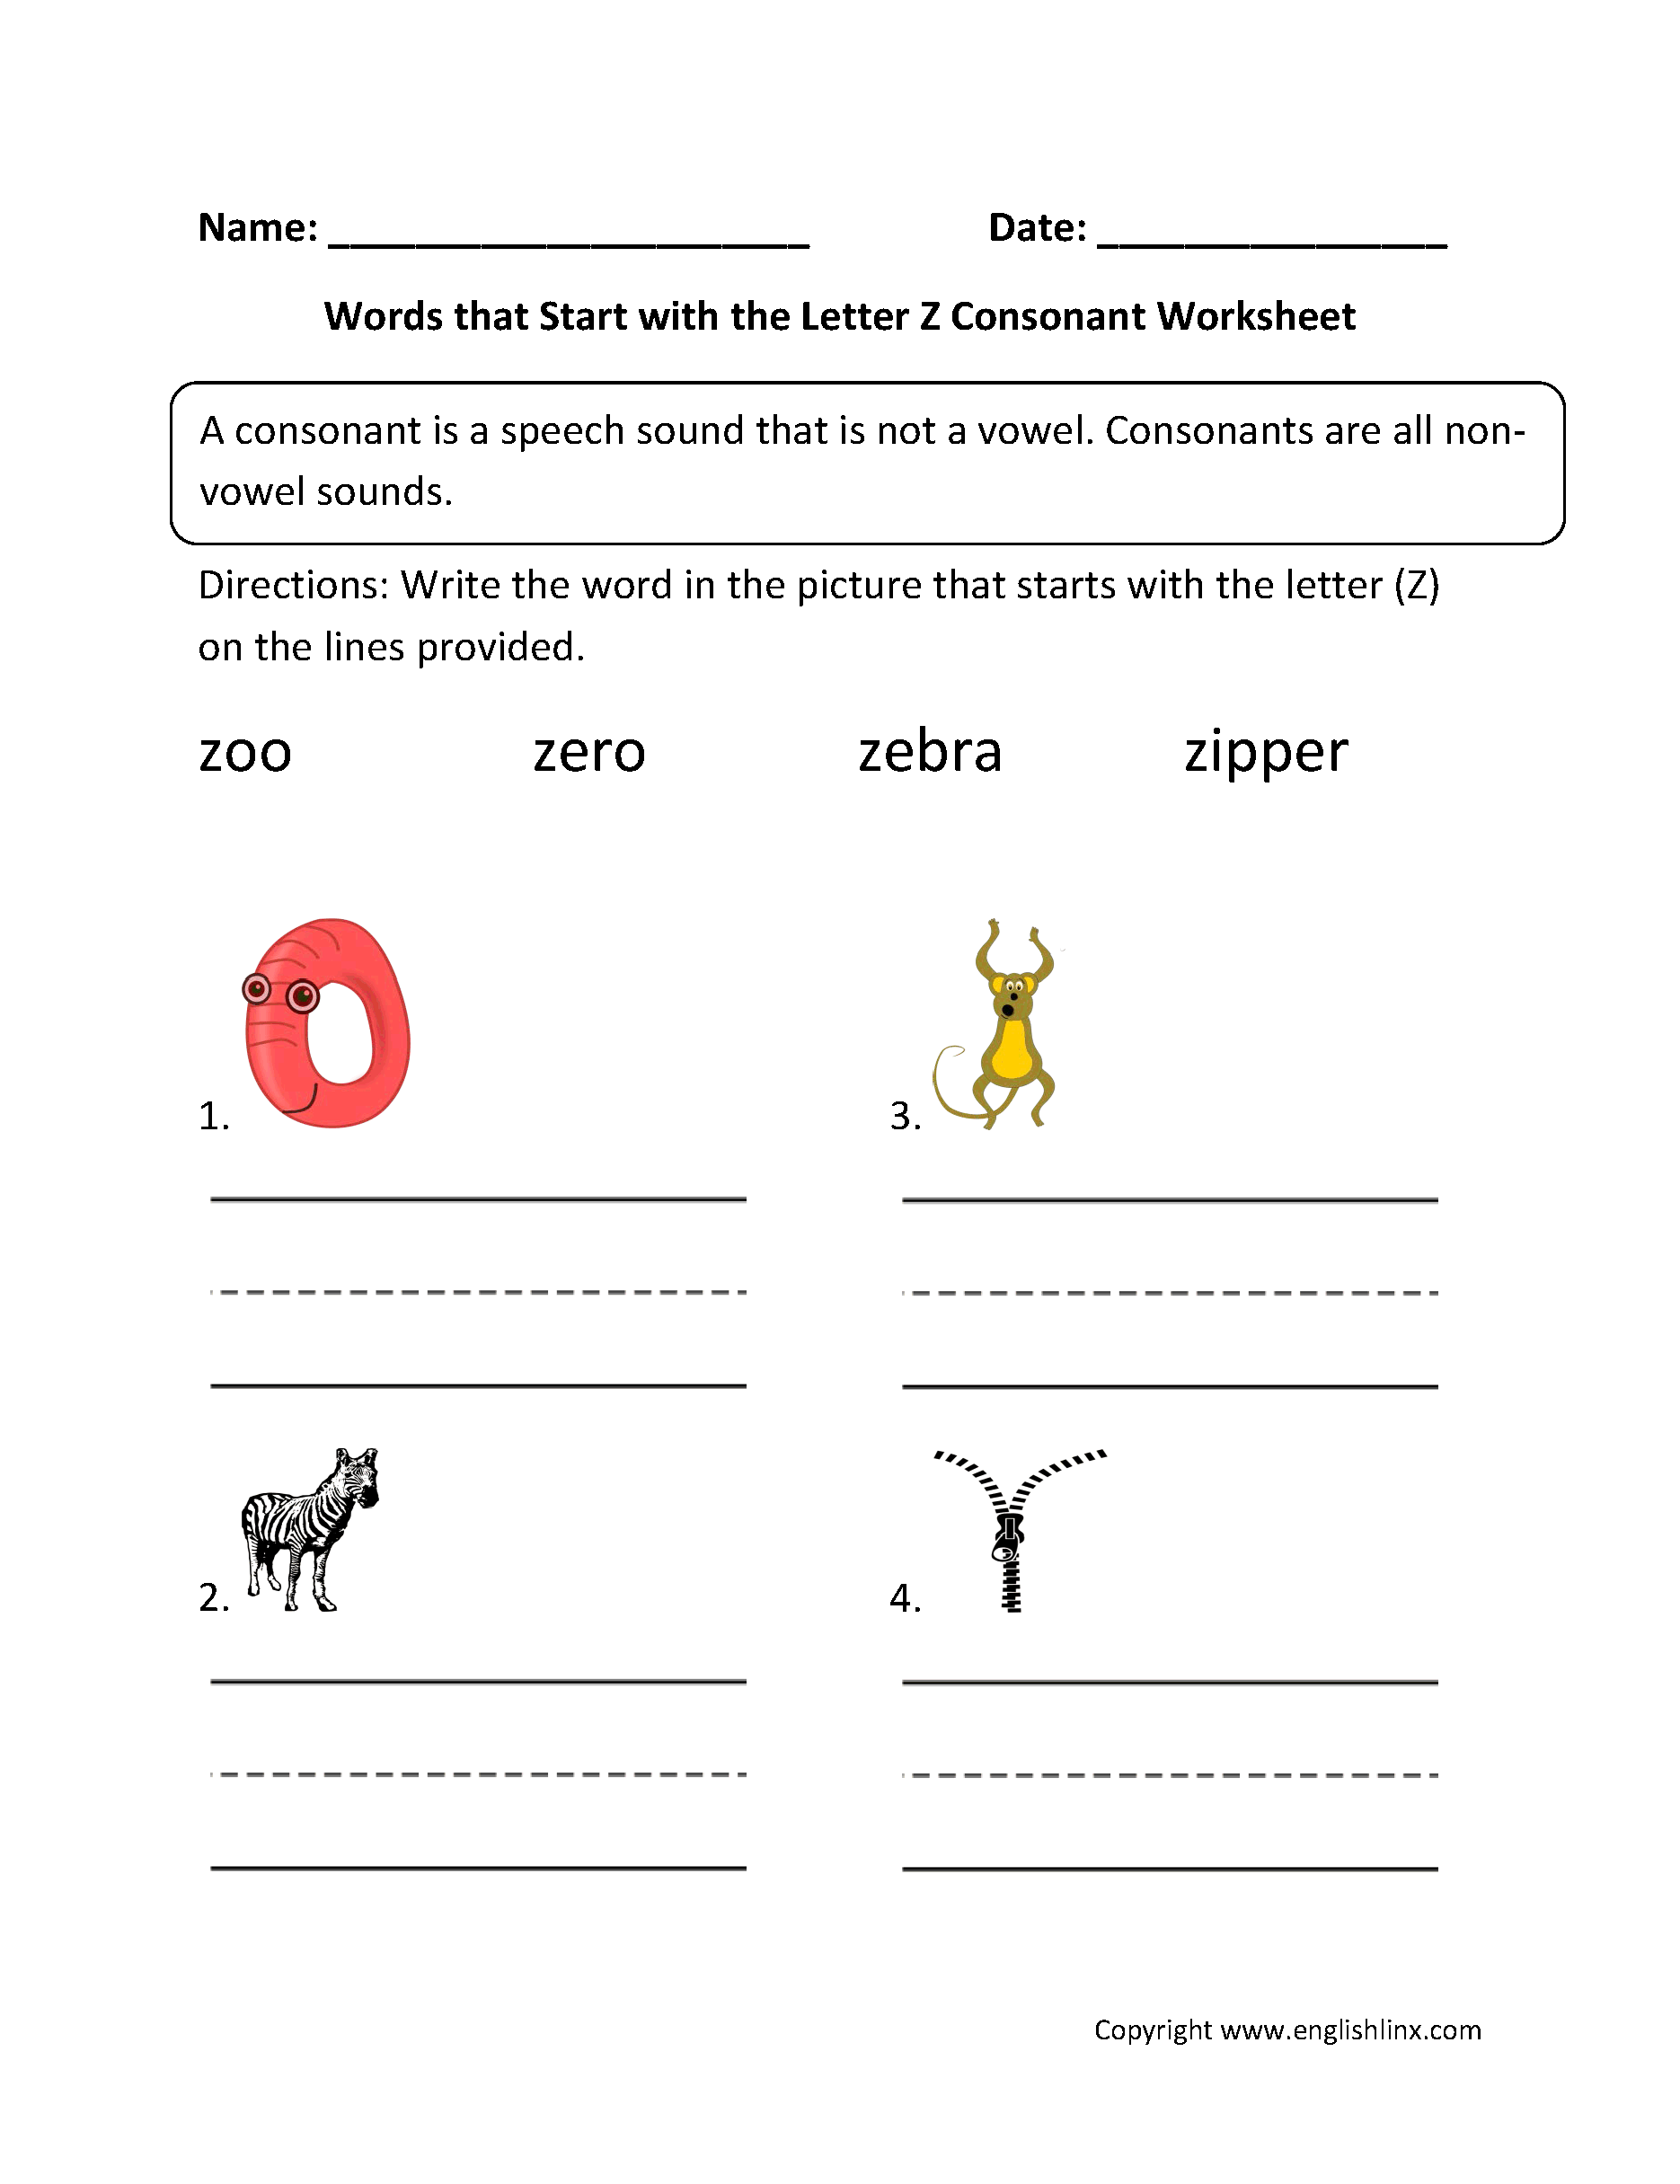 phonics worksheets consonant worksheets